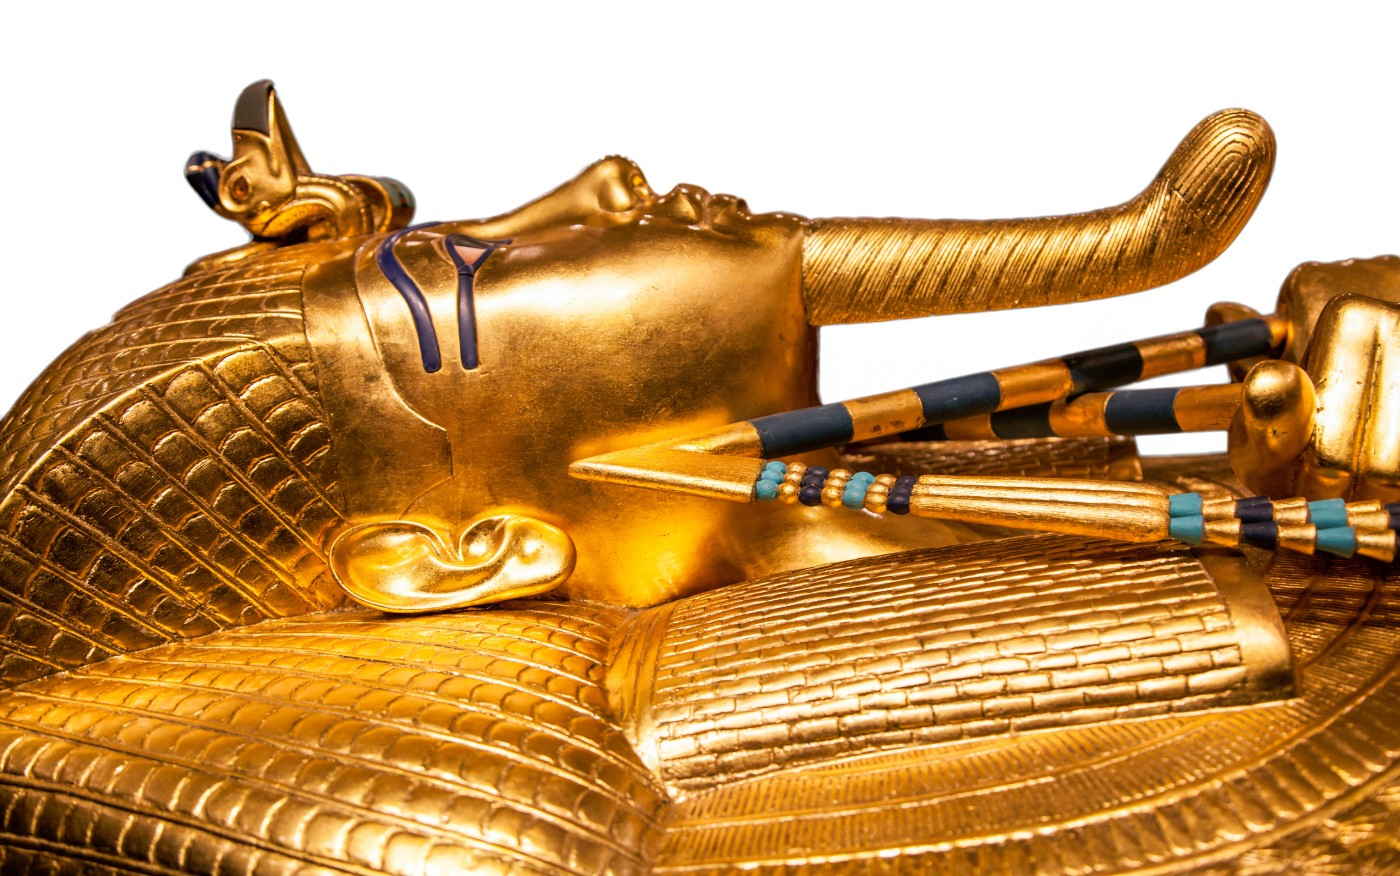 https://tickertapecdn.tdameritrade.com/assets/images/pages/md/Pharaoh: investing in gold